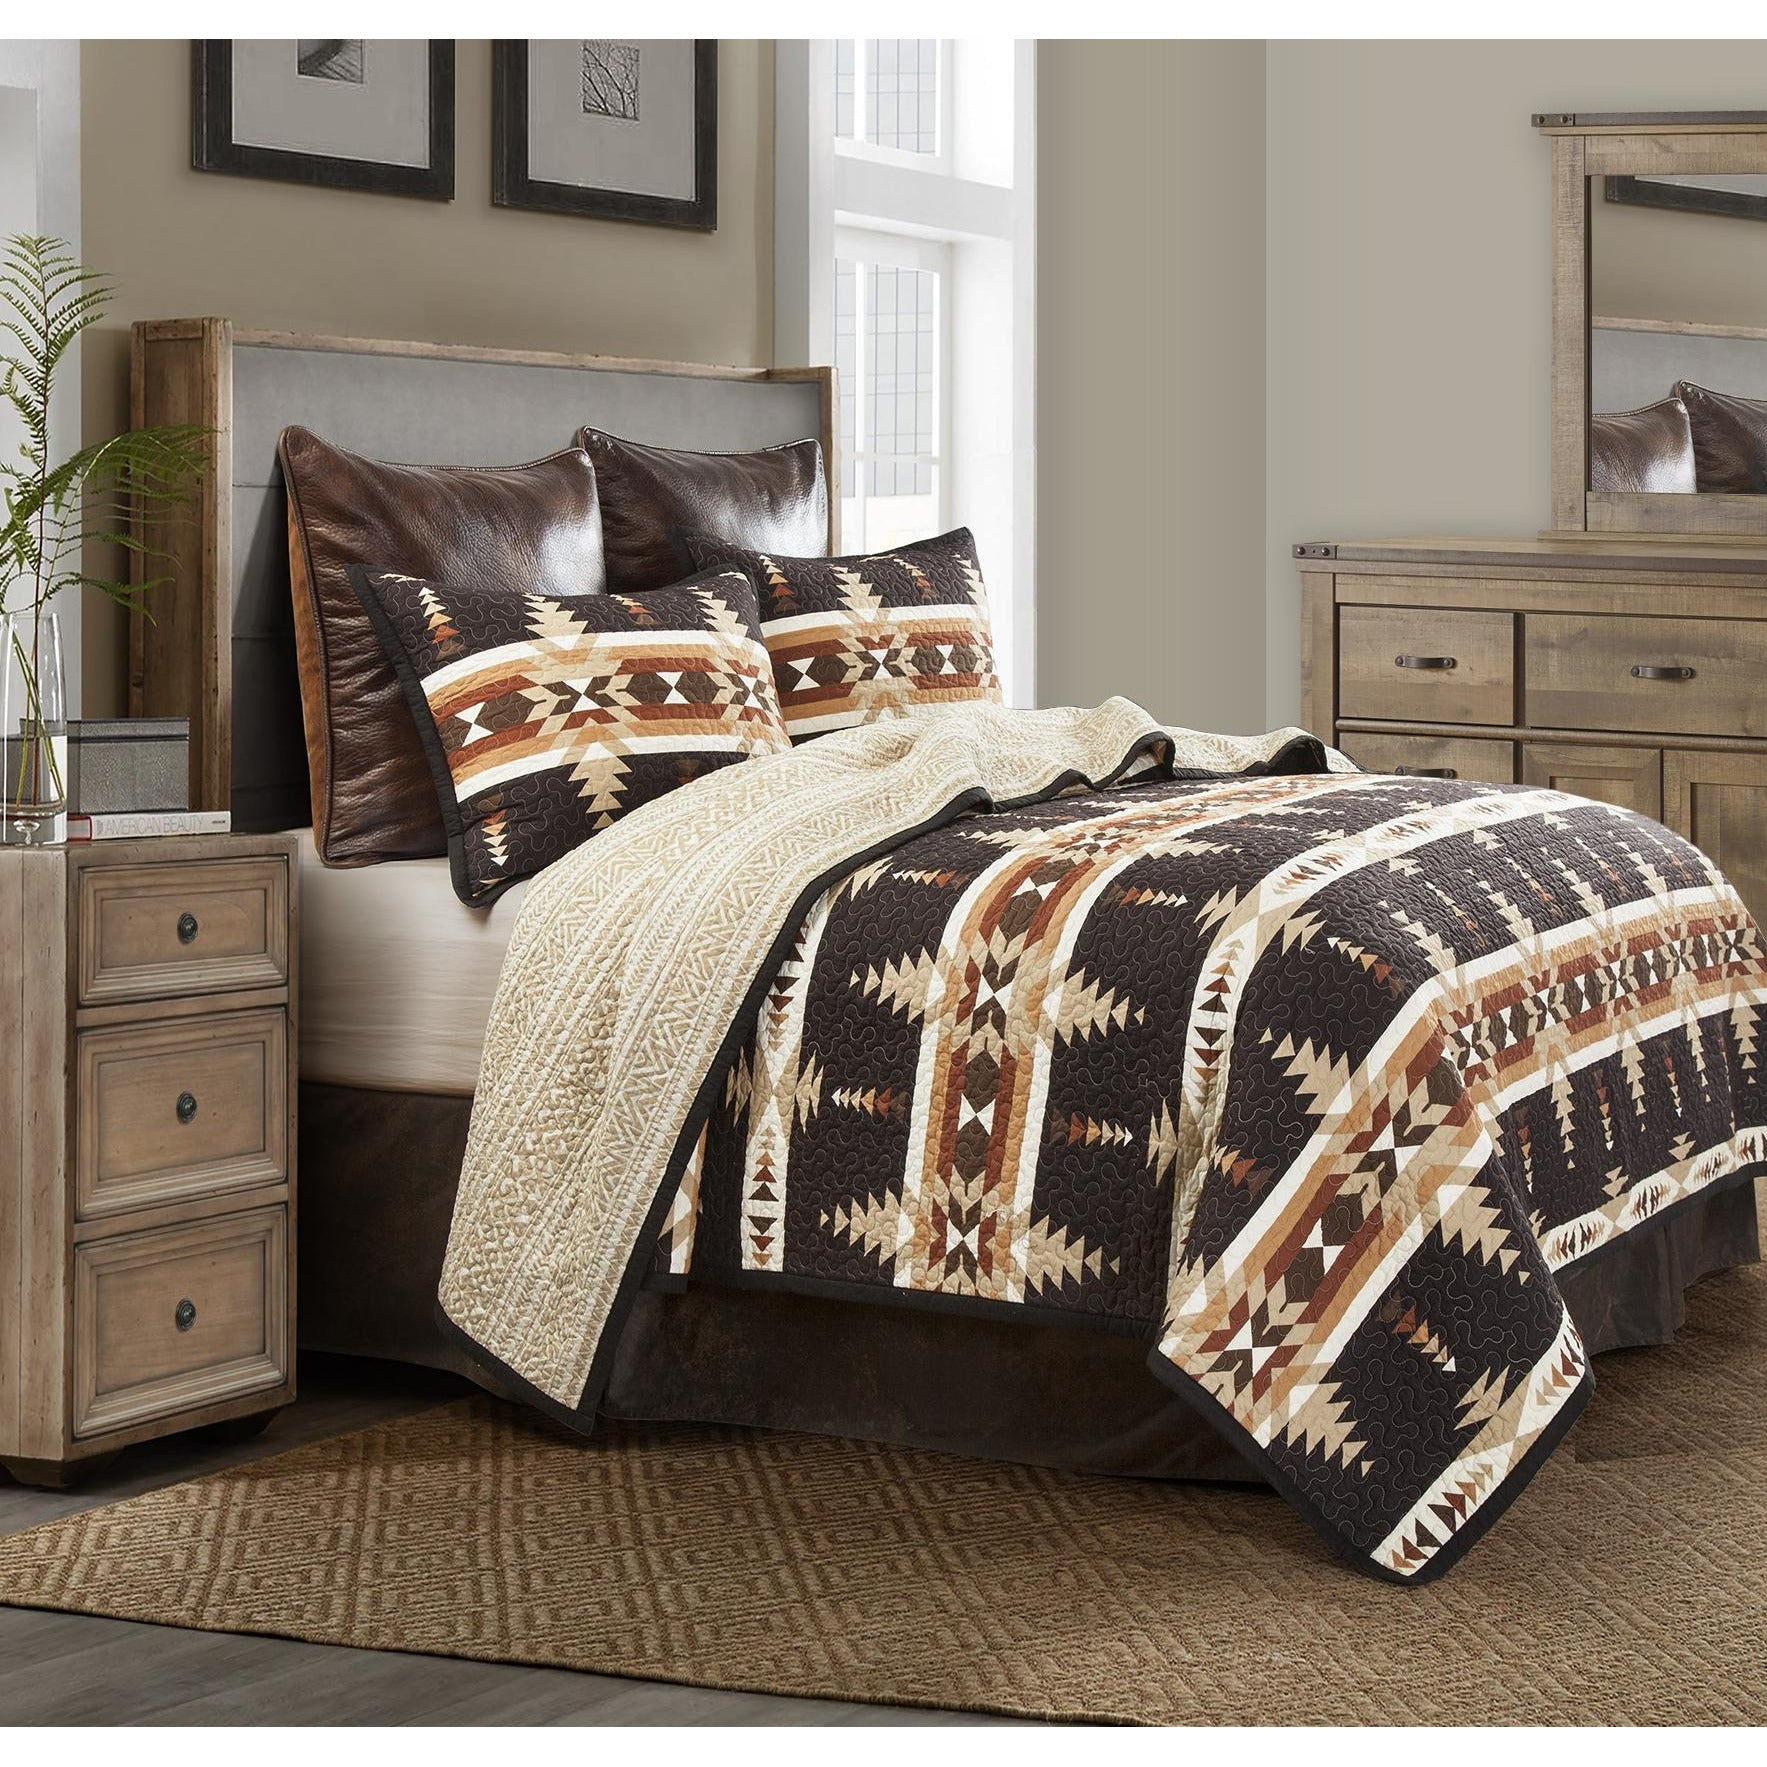 Yosemite Bedding Set